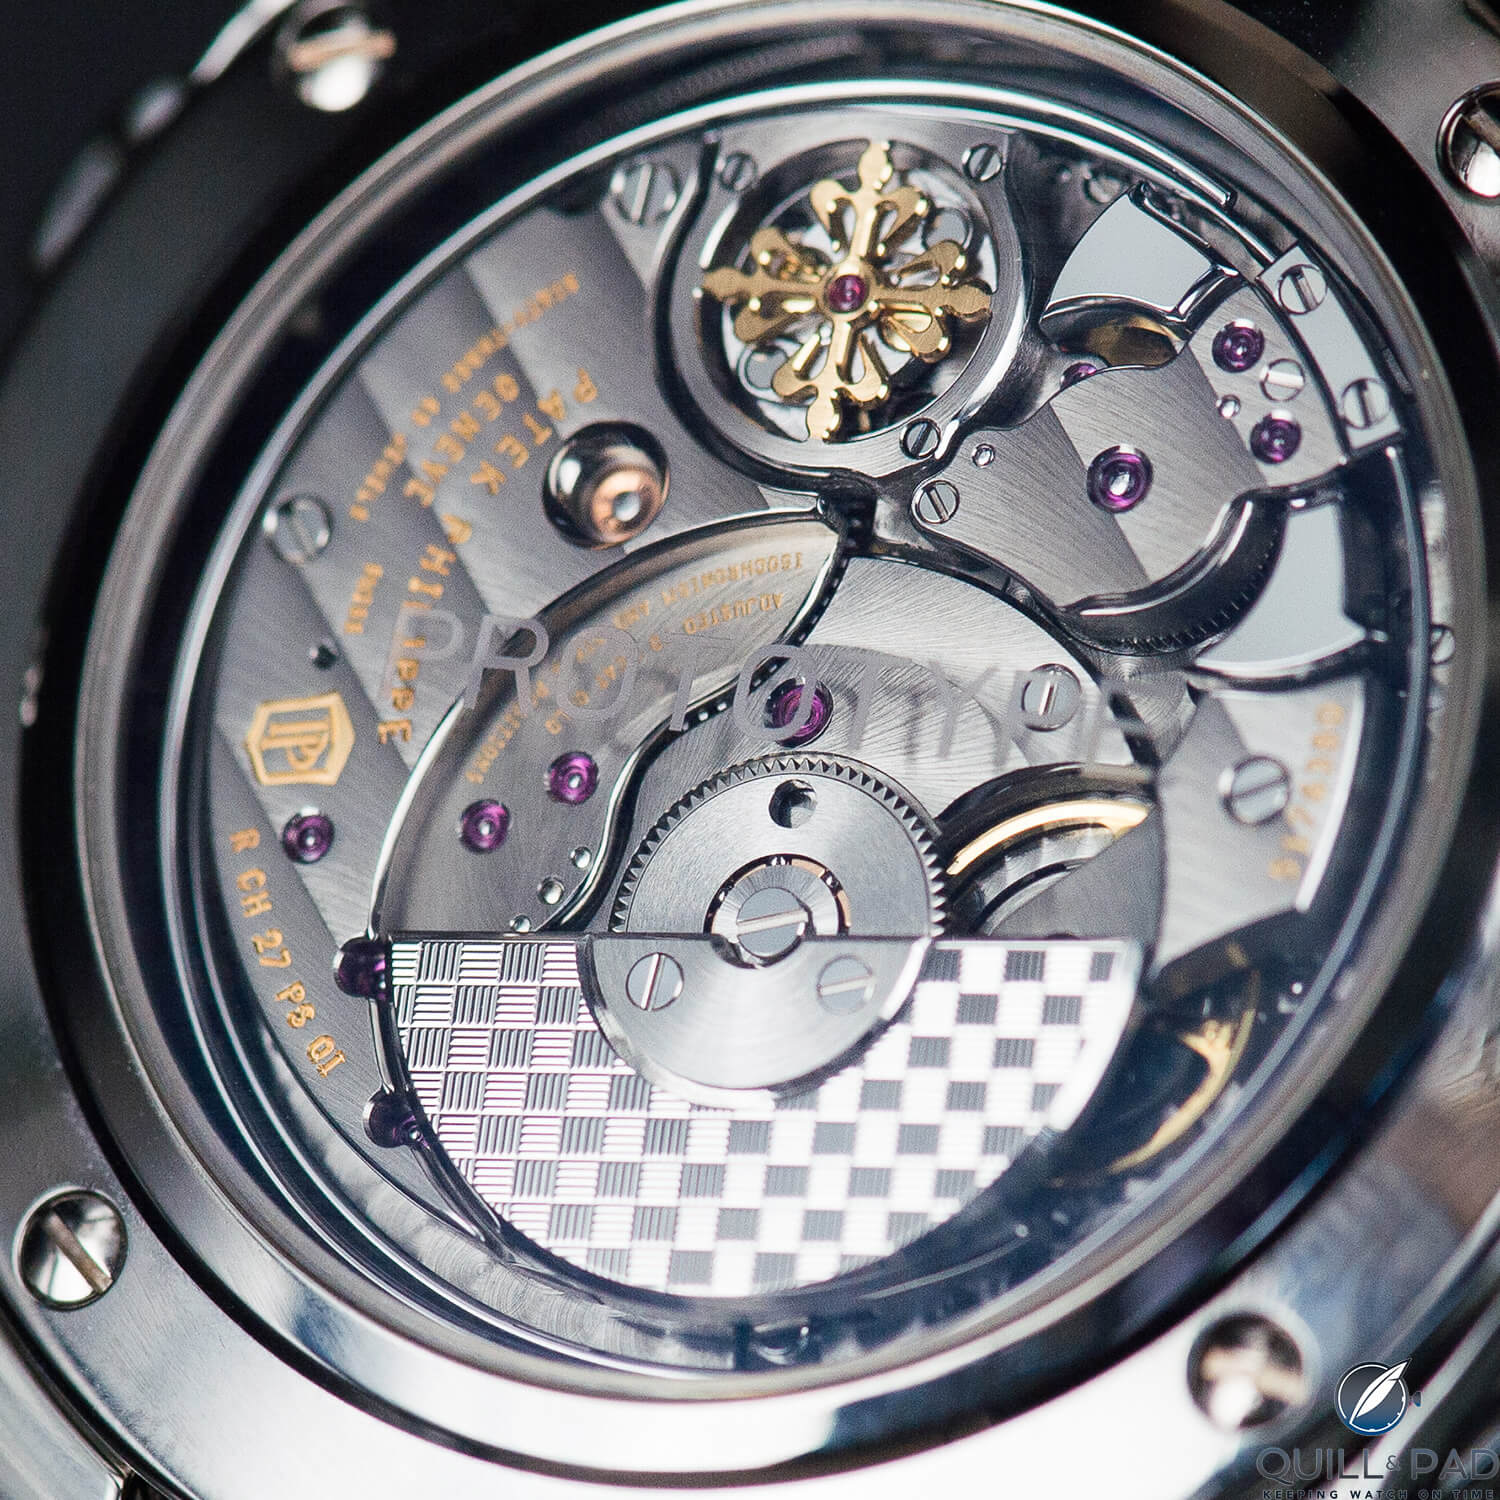 Patek Philippe Caliber R CH 27 PS QI automatic winding grand complication movement powers the Reference 5208T-010 unique piece in titanium for Only Watch 2017